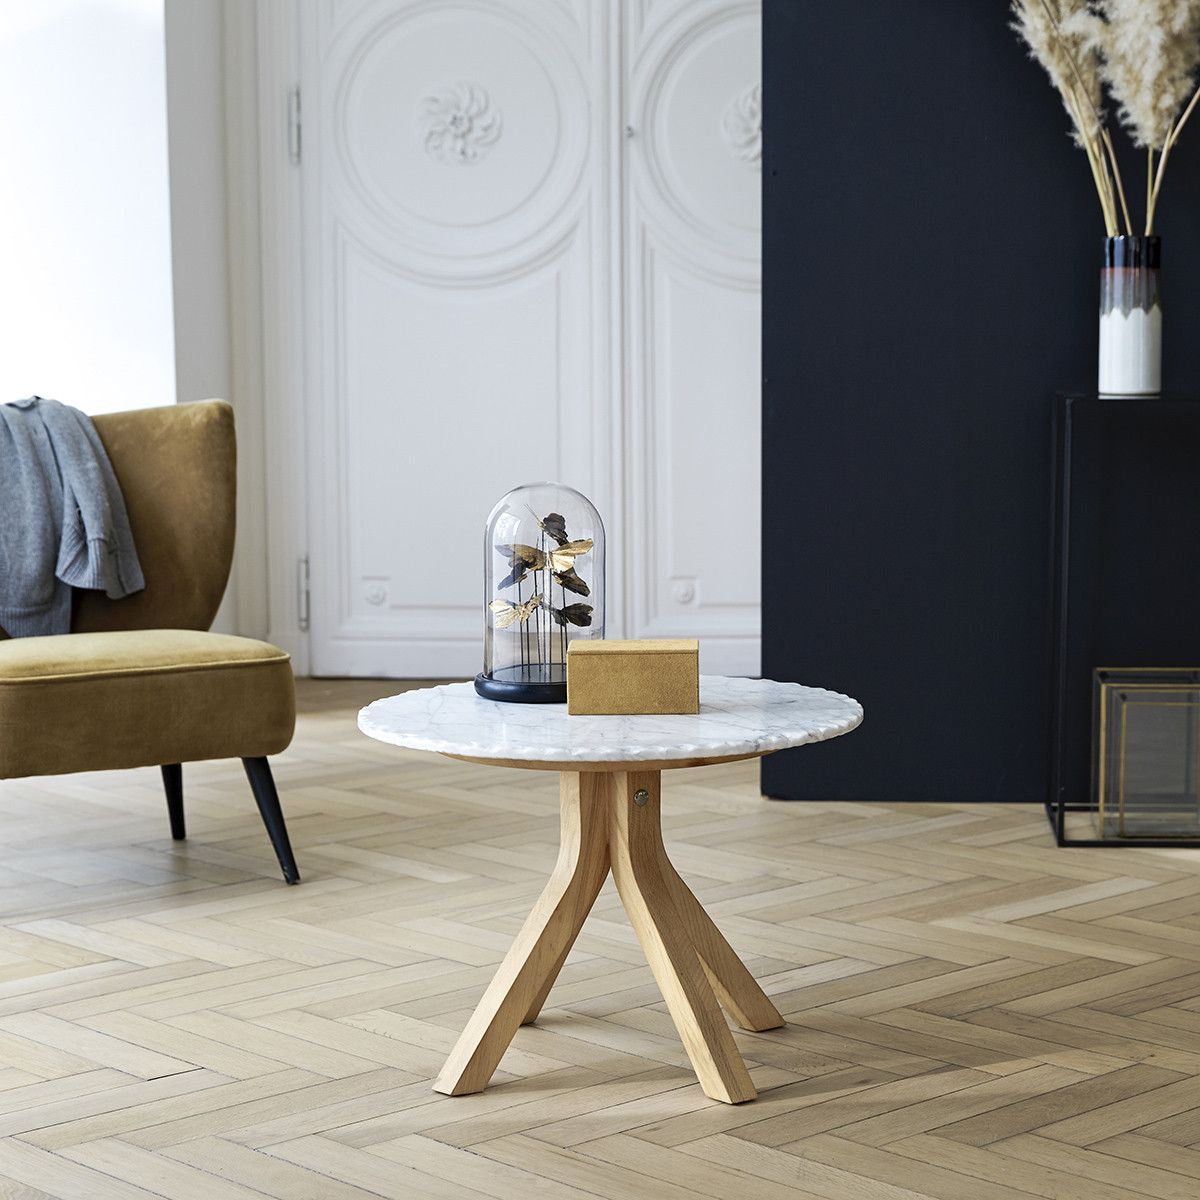 Oak Wood And Marble Coffee Table 50 Cm In 2020 Side Table Wood Mahogany Coffee Table Marble Coffee Table [ 1200 x 1200 Pixel ]